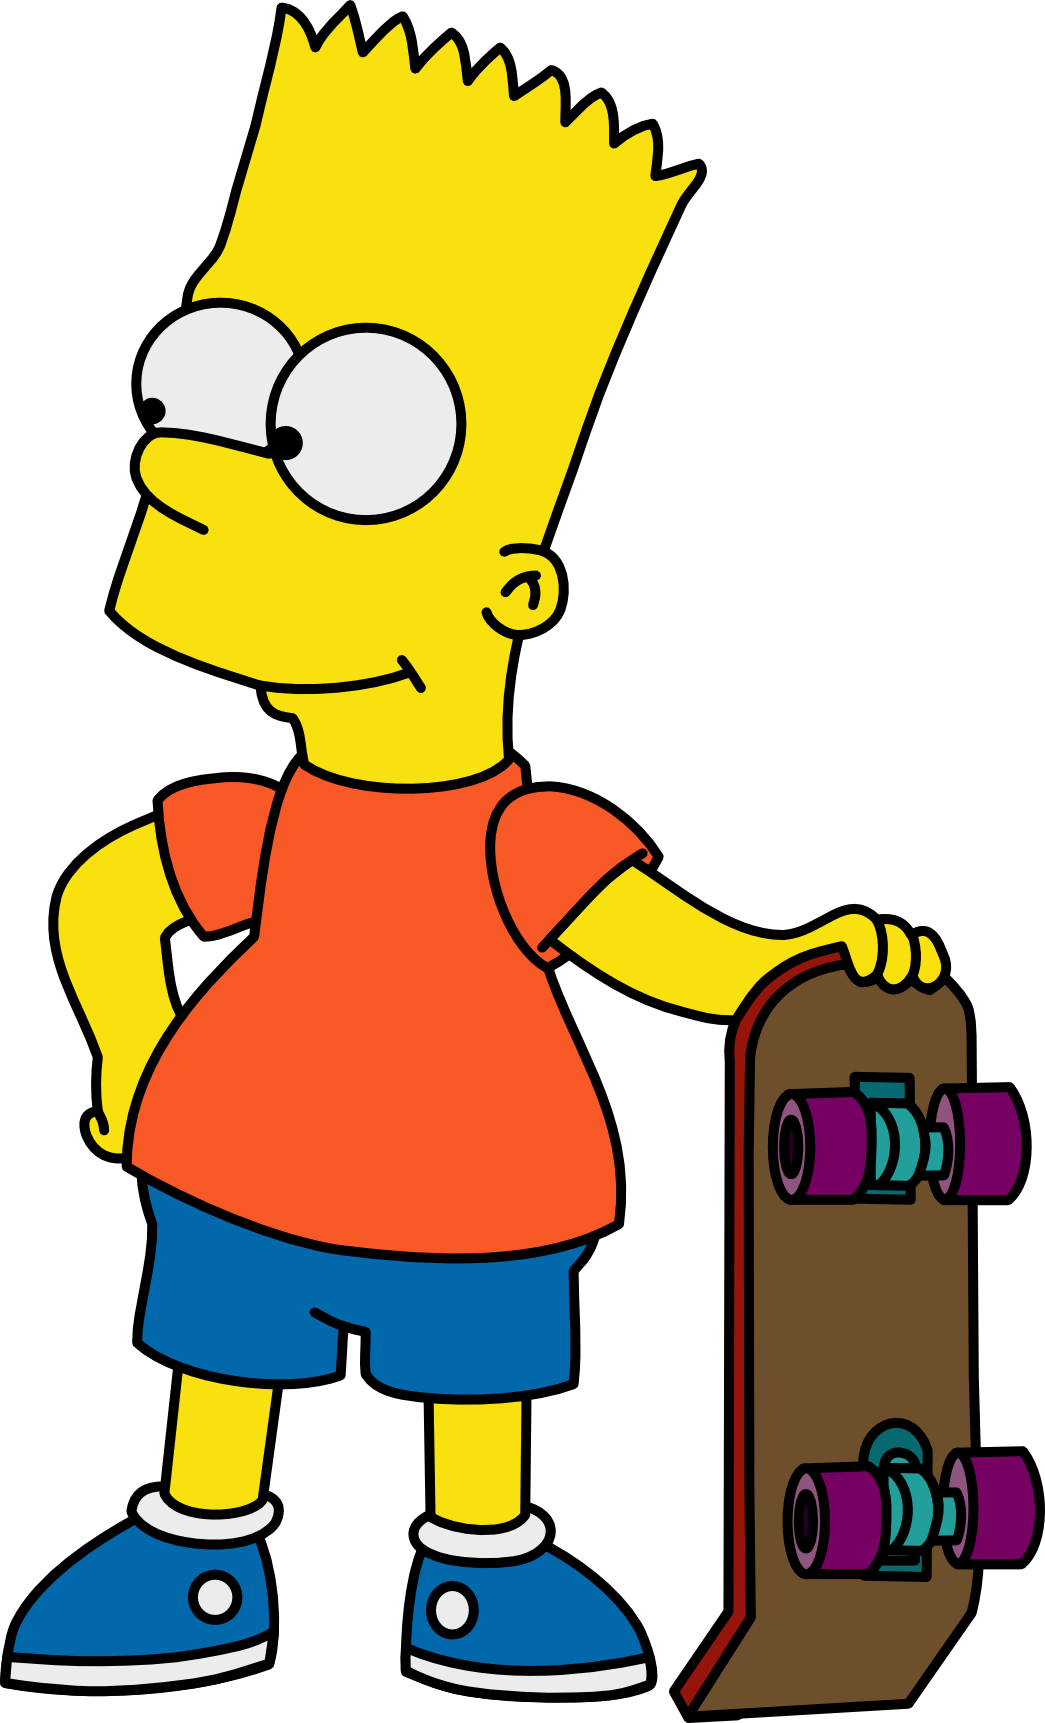 Bart with his Skateboard by Mighty355 on DeviantArt